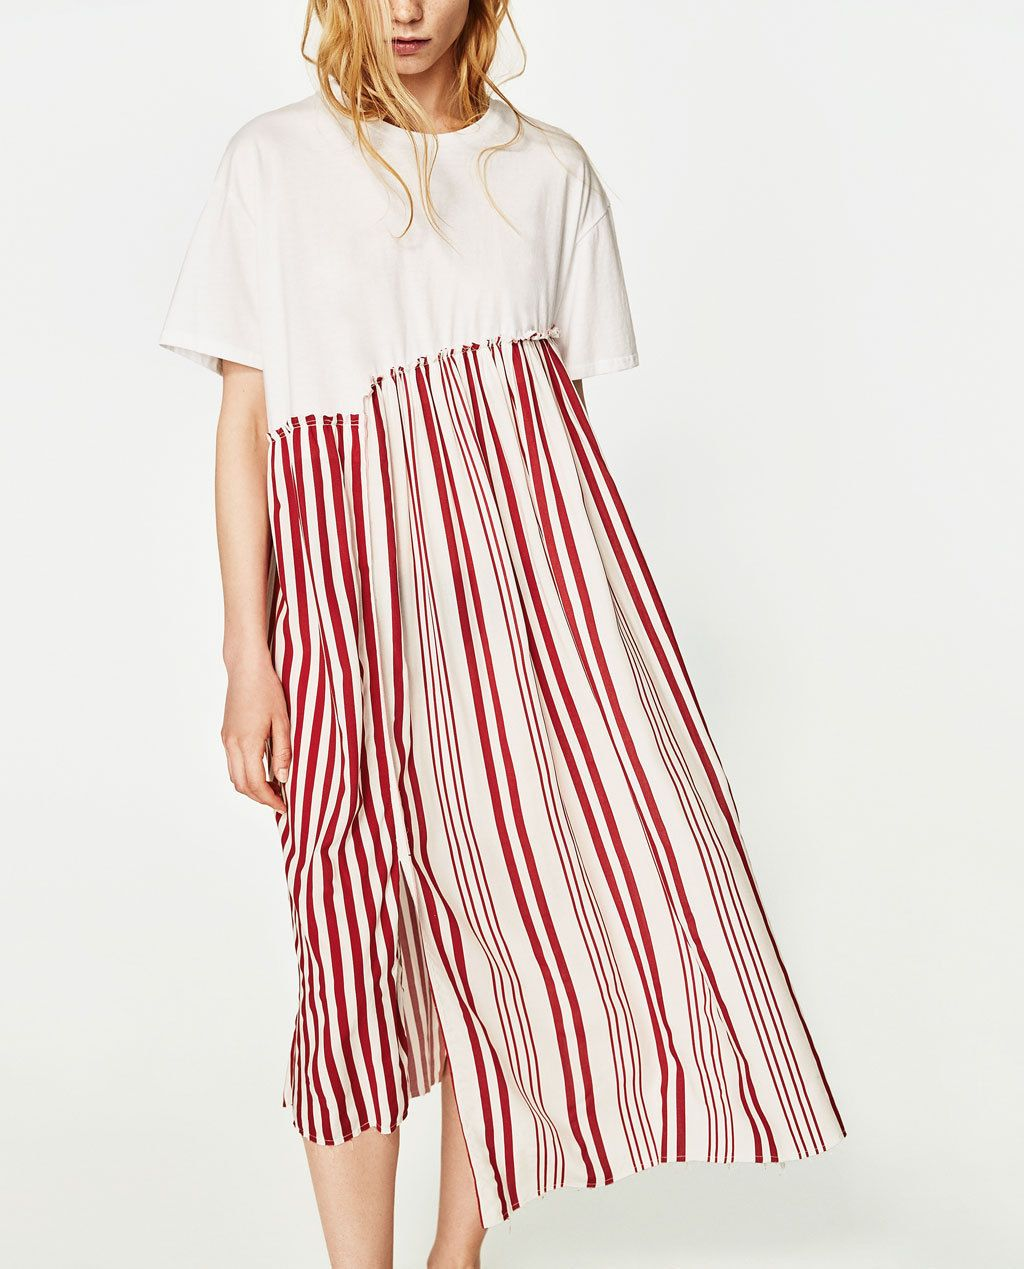 Cool NWT SS2017 CUTE ZARA Red & White Contrast Striped Dress Size ...